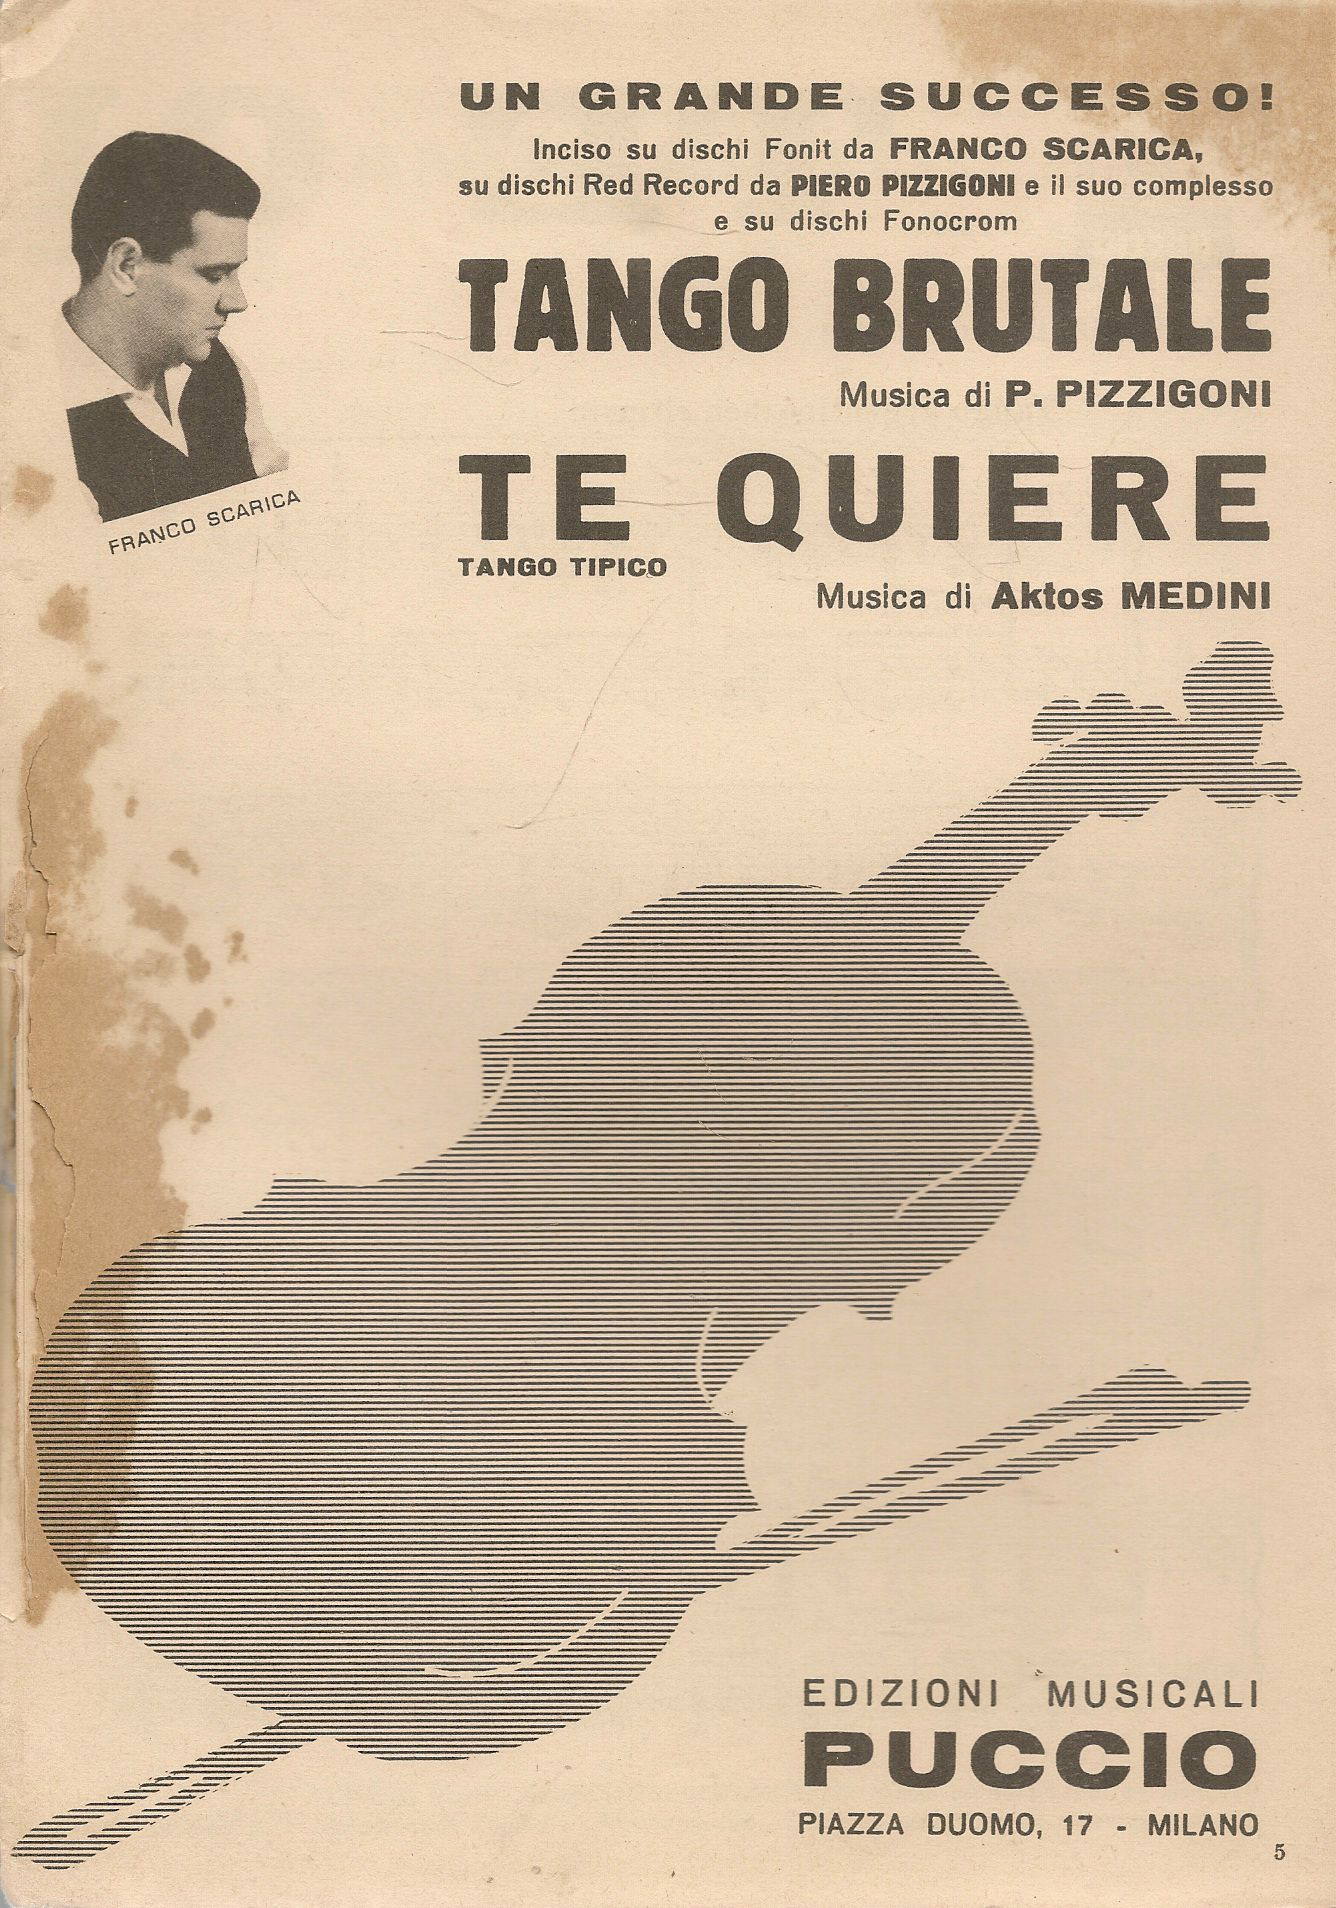 TANGO BRUTALE - TE QUIERE - SPARTITO-SHEET MUSIC